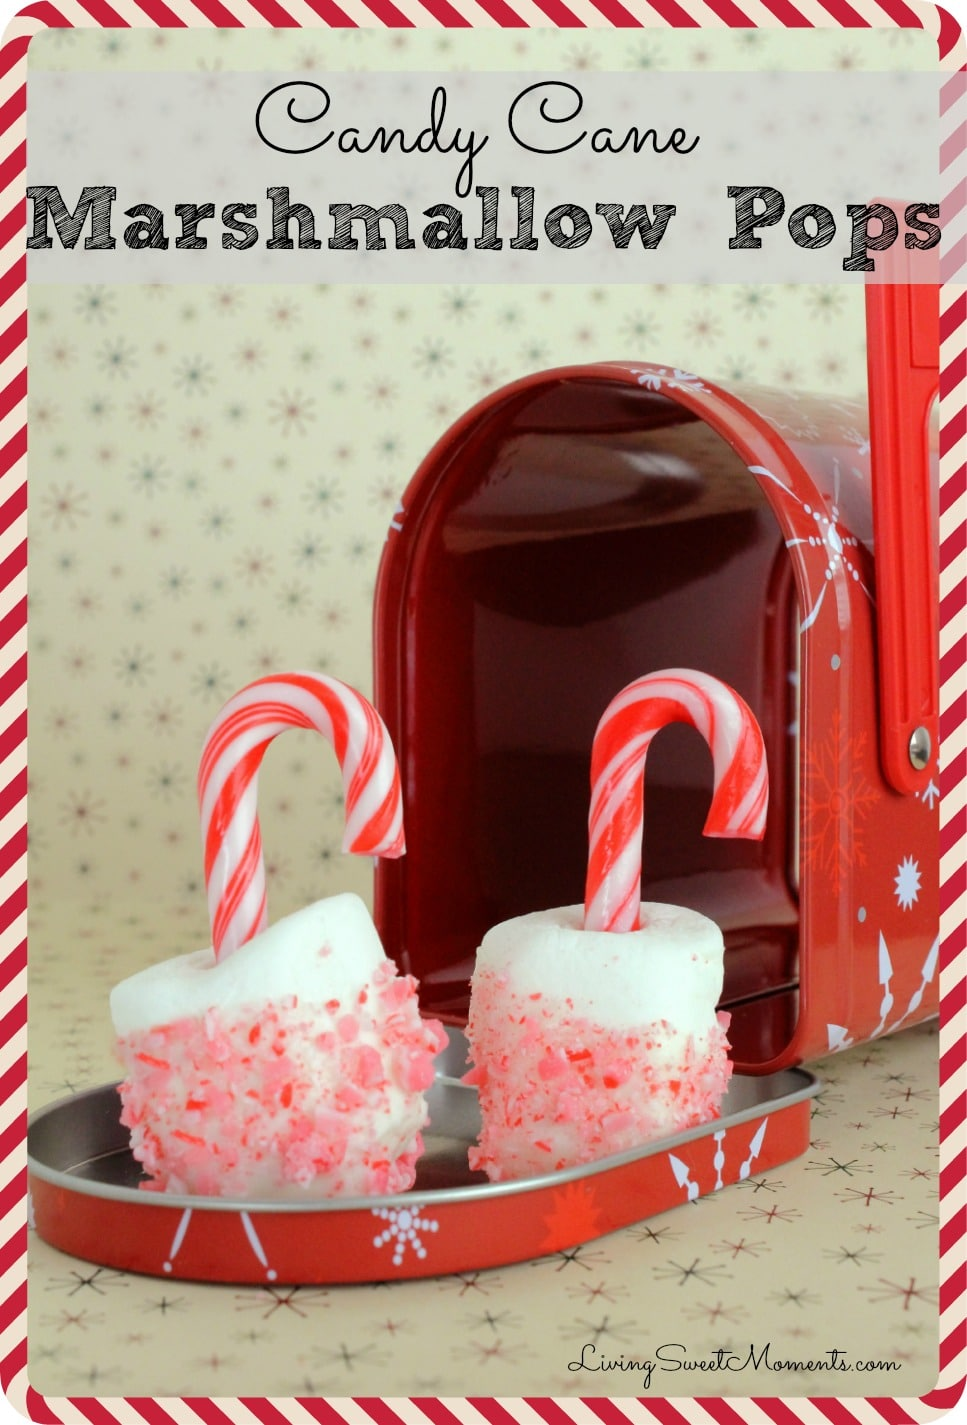 These easy to make Candy Cane Marshmallows are the perfect snack for the Holidays. Kids will have a lot of fun decorating these. They double as an ornament.